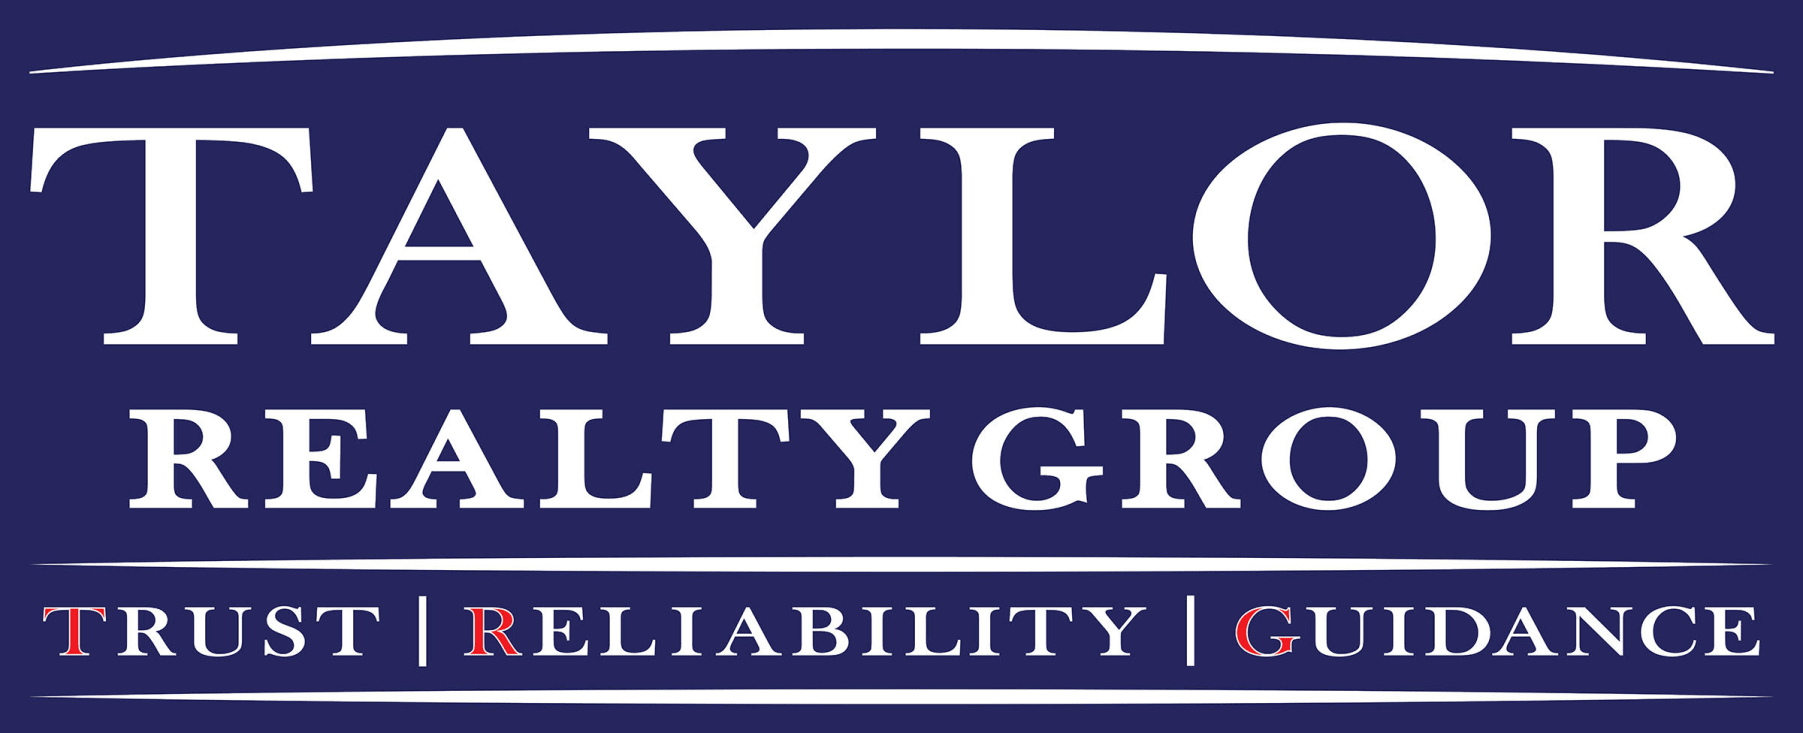 Taylor Realty Group